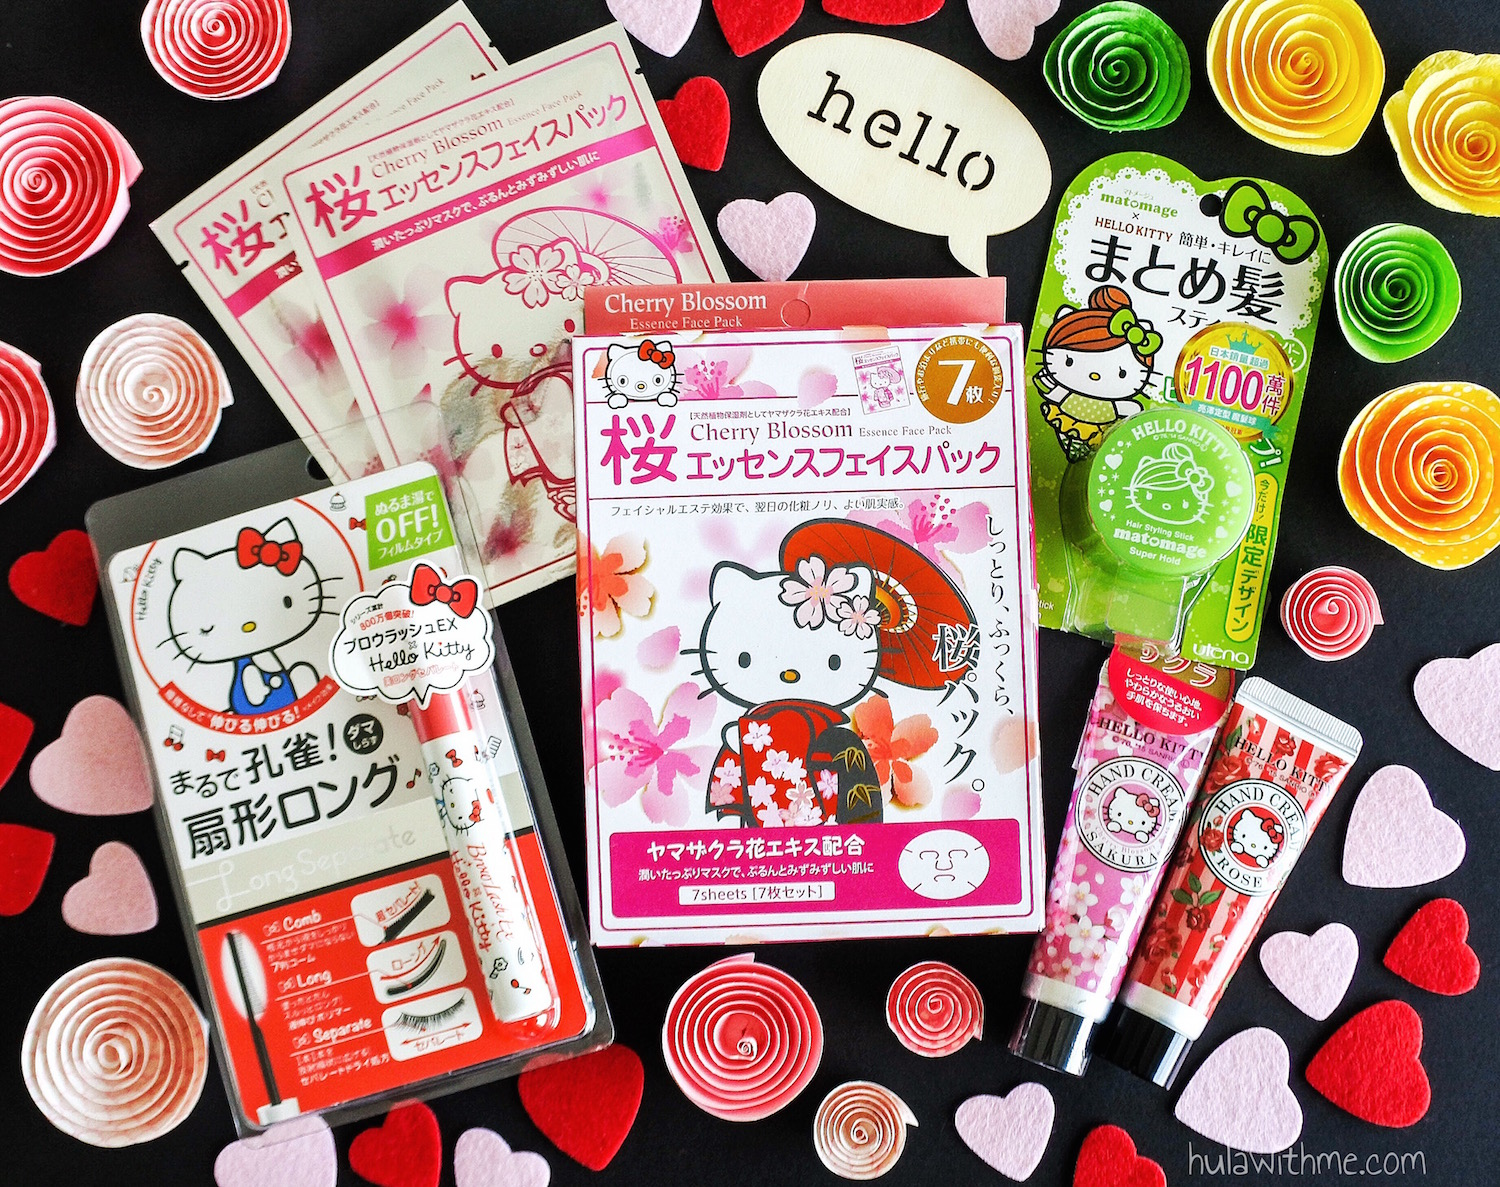 Sharing Hello KItty beauty products from Hong Kong.